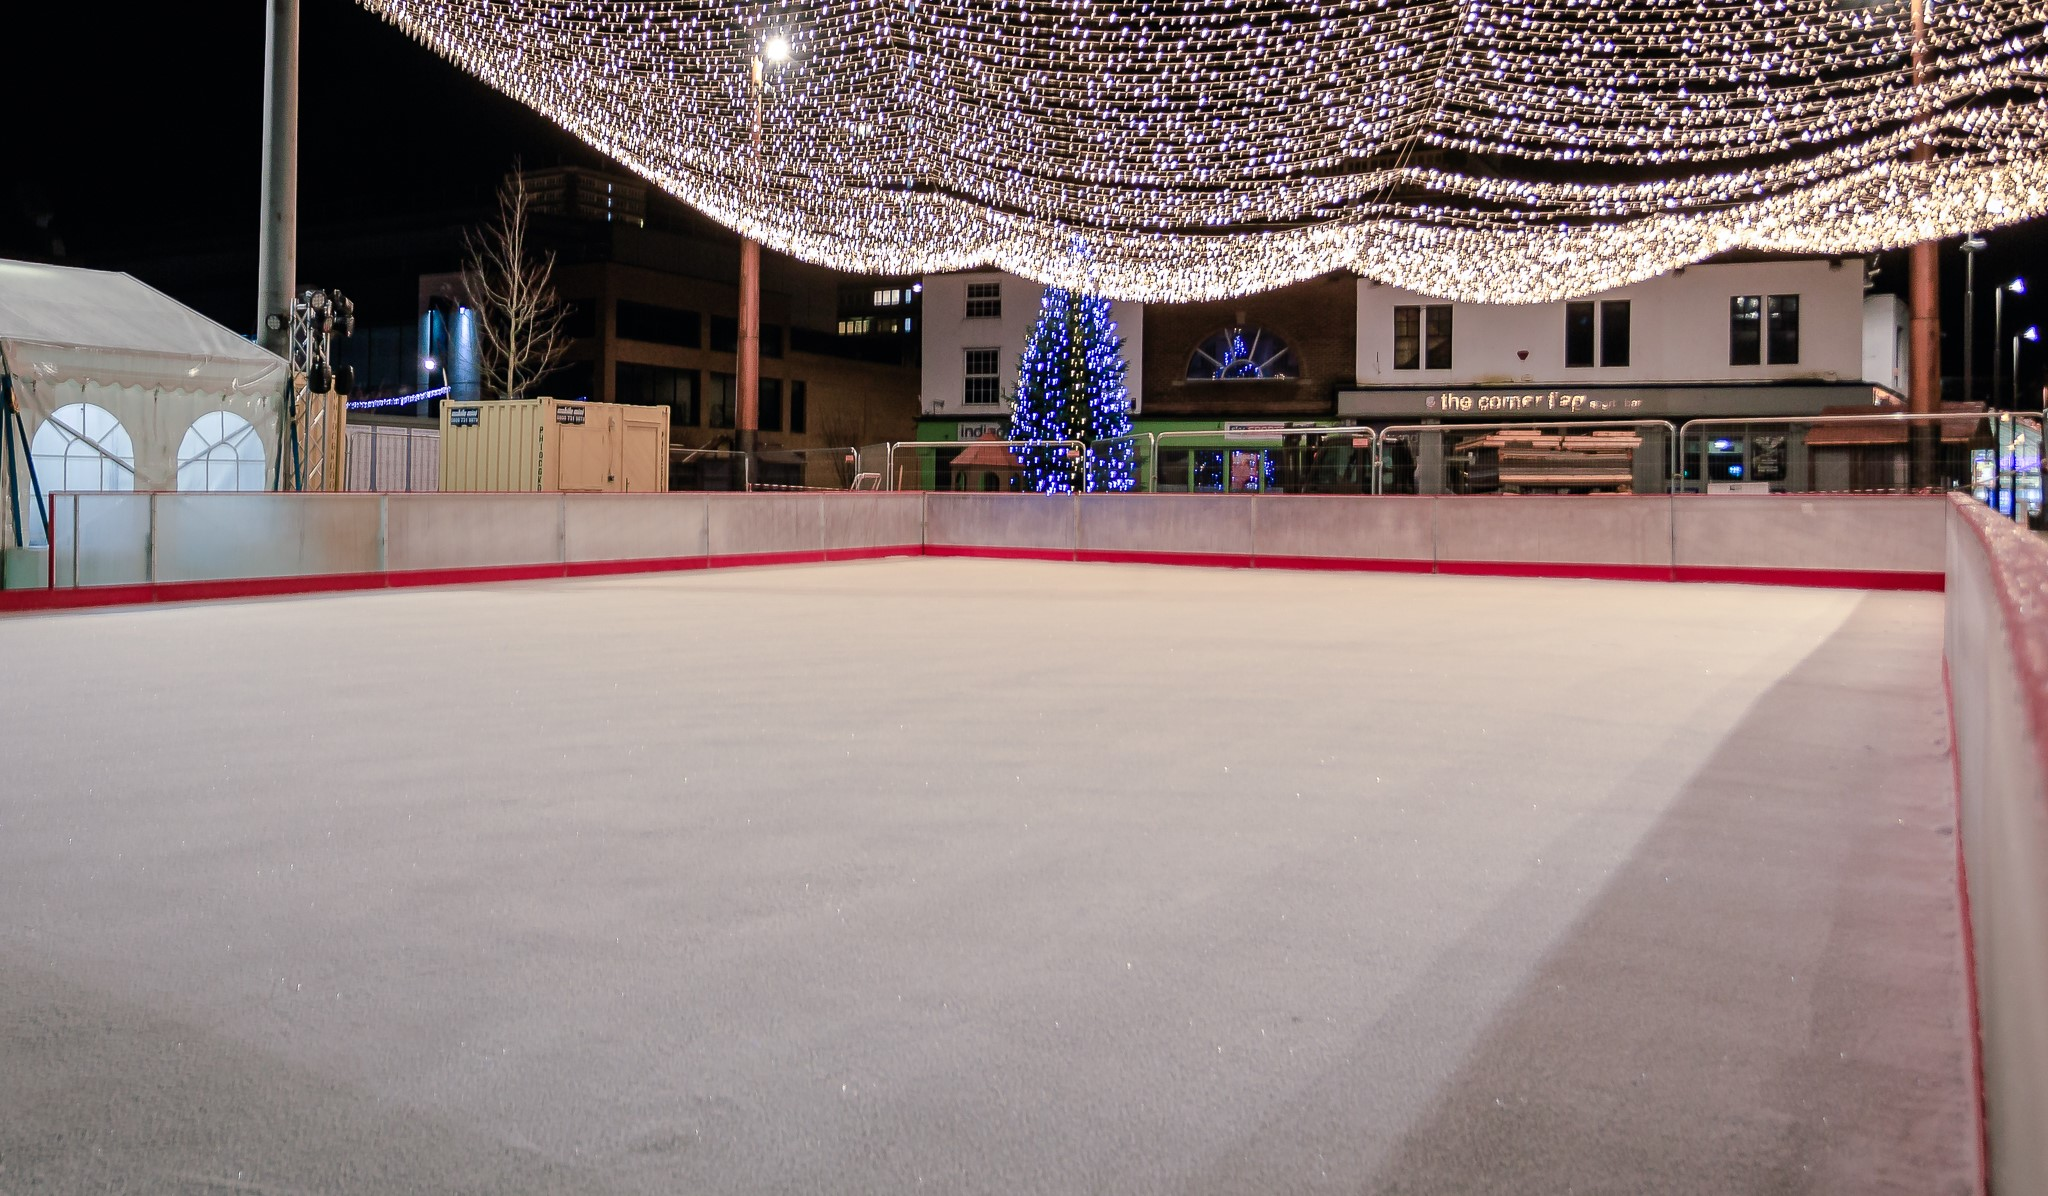 Sunderland Keel Square Ice Skating